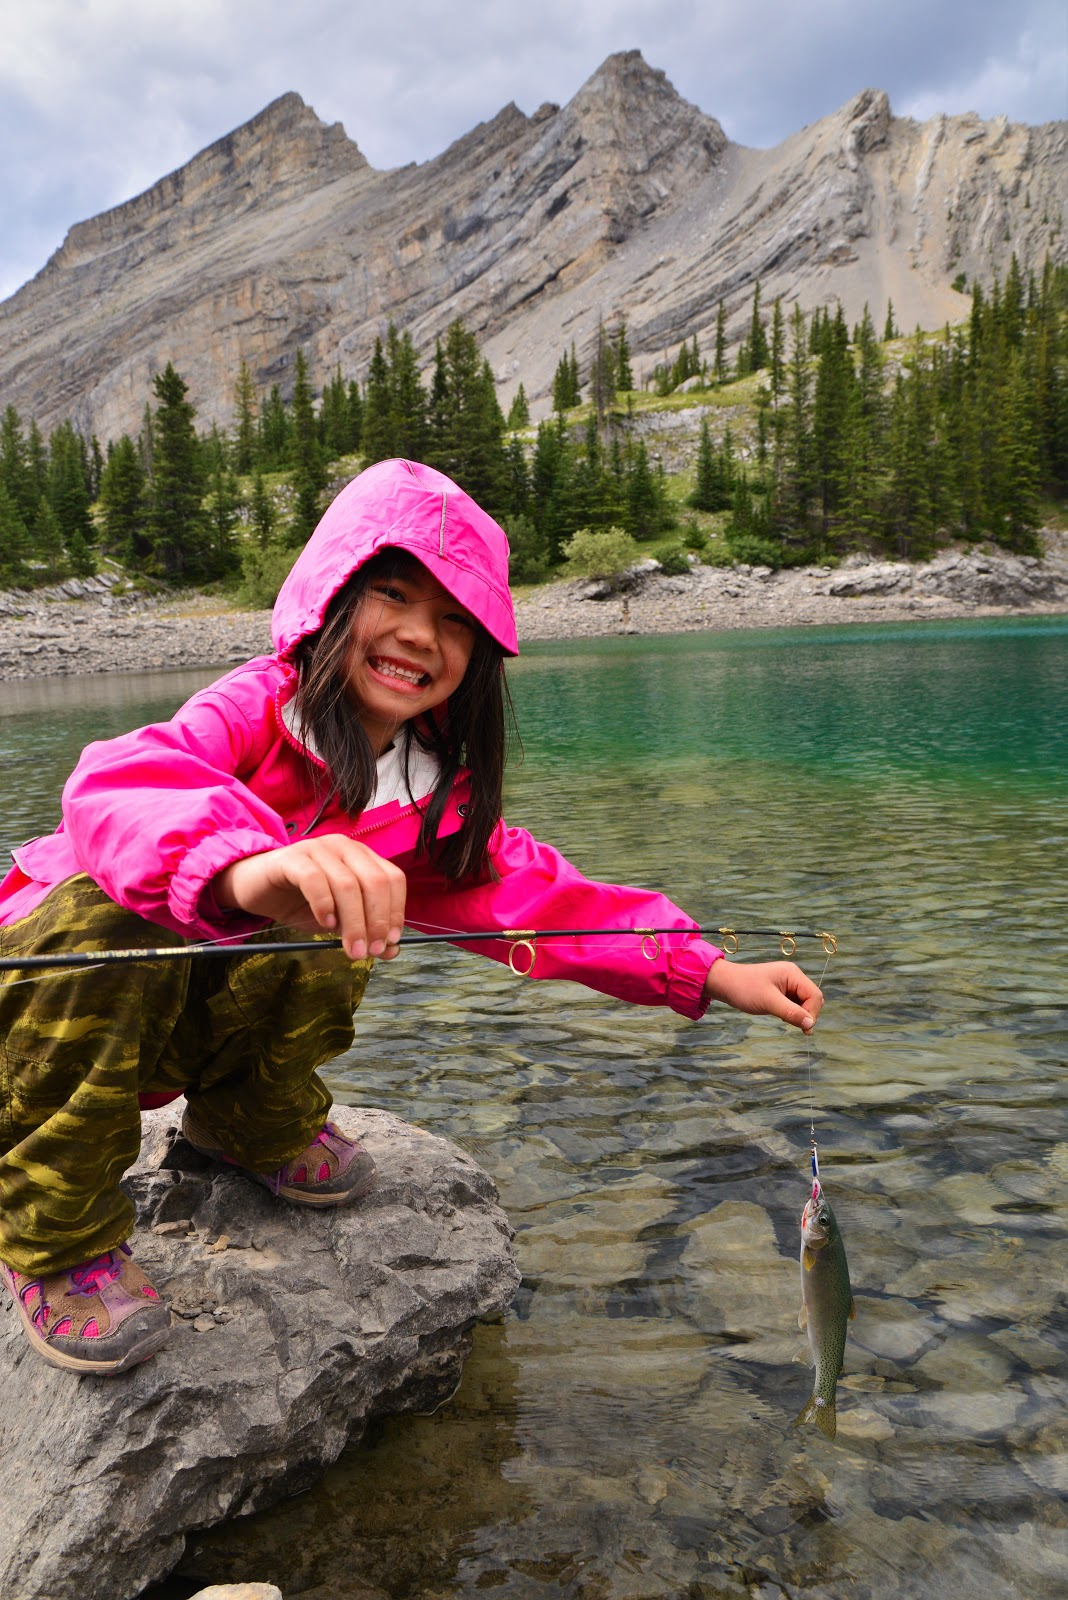 Fishing at Picklejar Lakes, Kananaskis